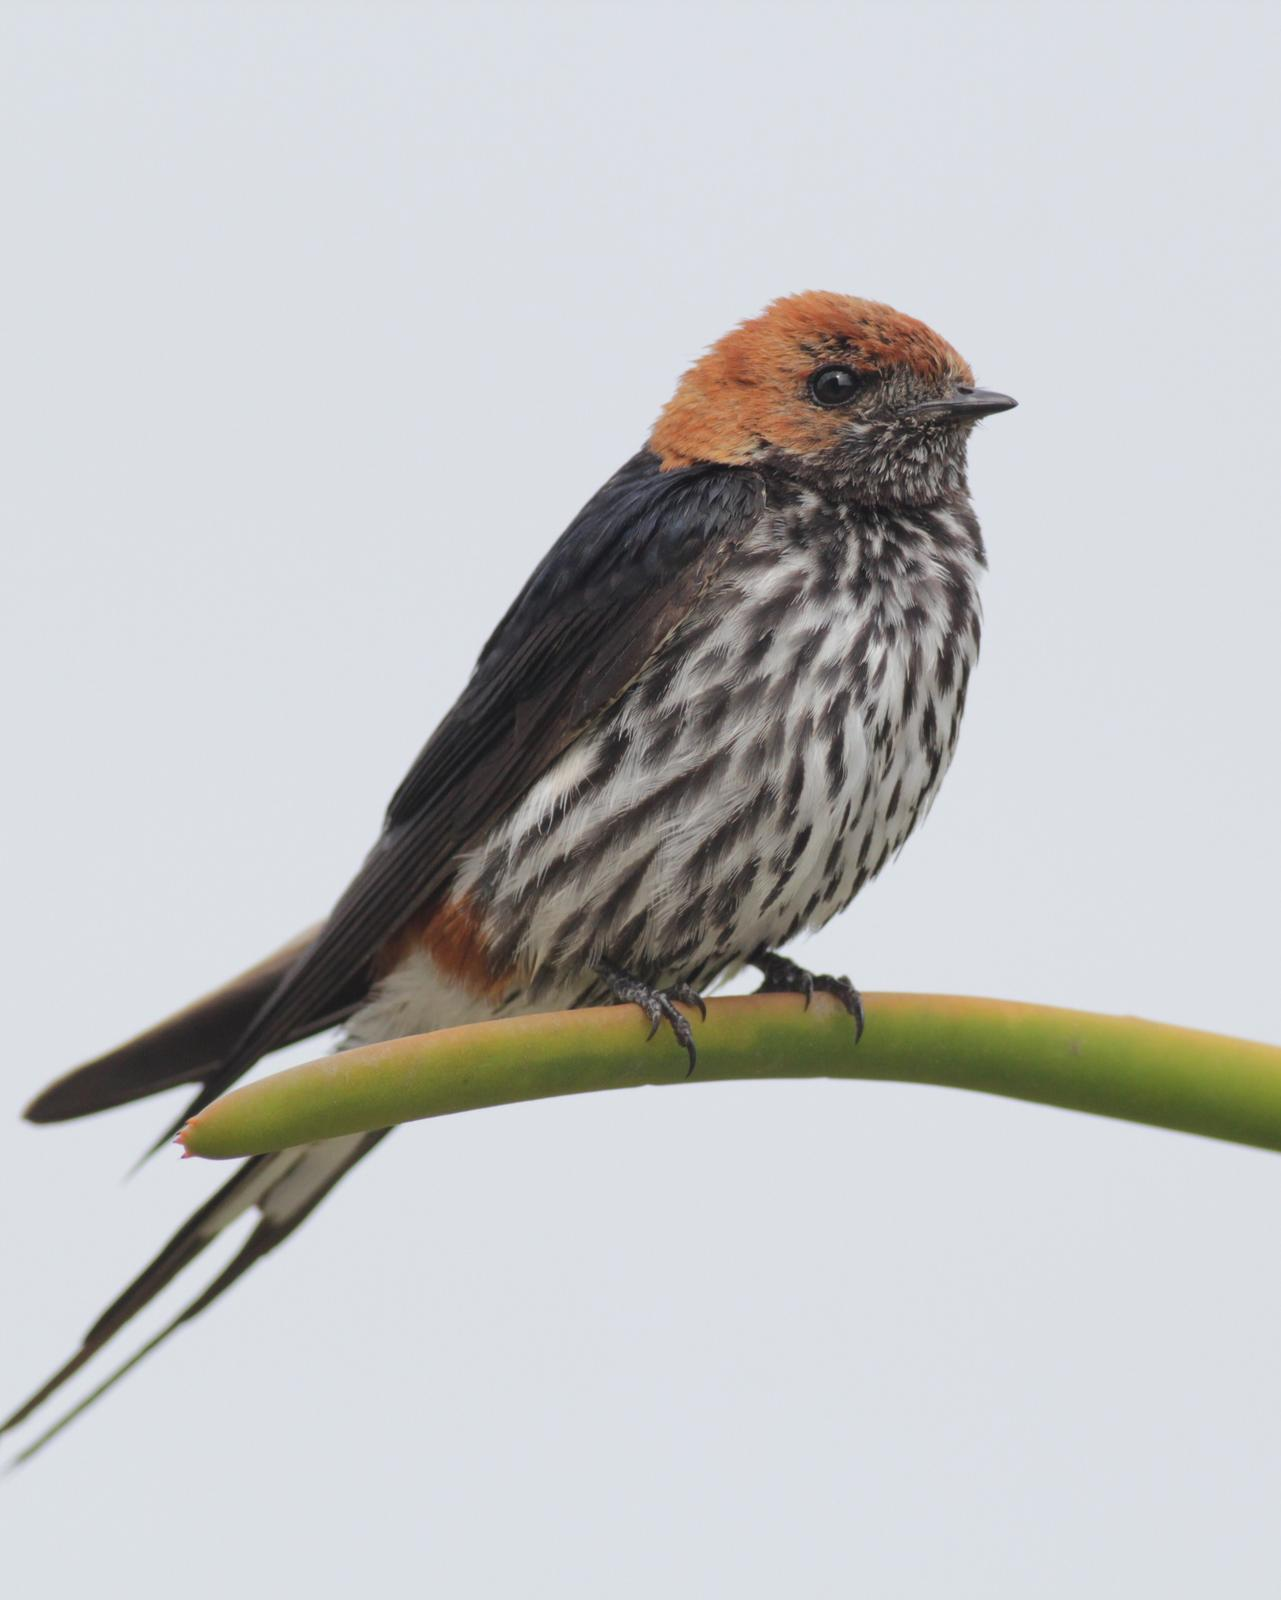 Lesser Striped Swallow Photo by Alex Lamoreaux